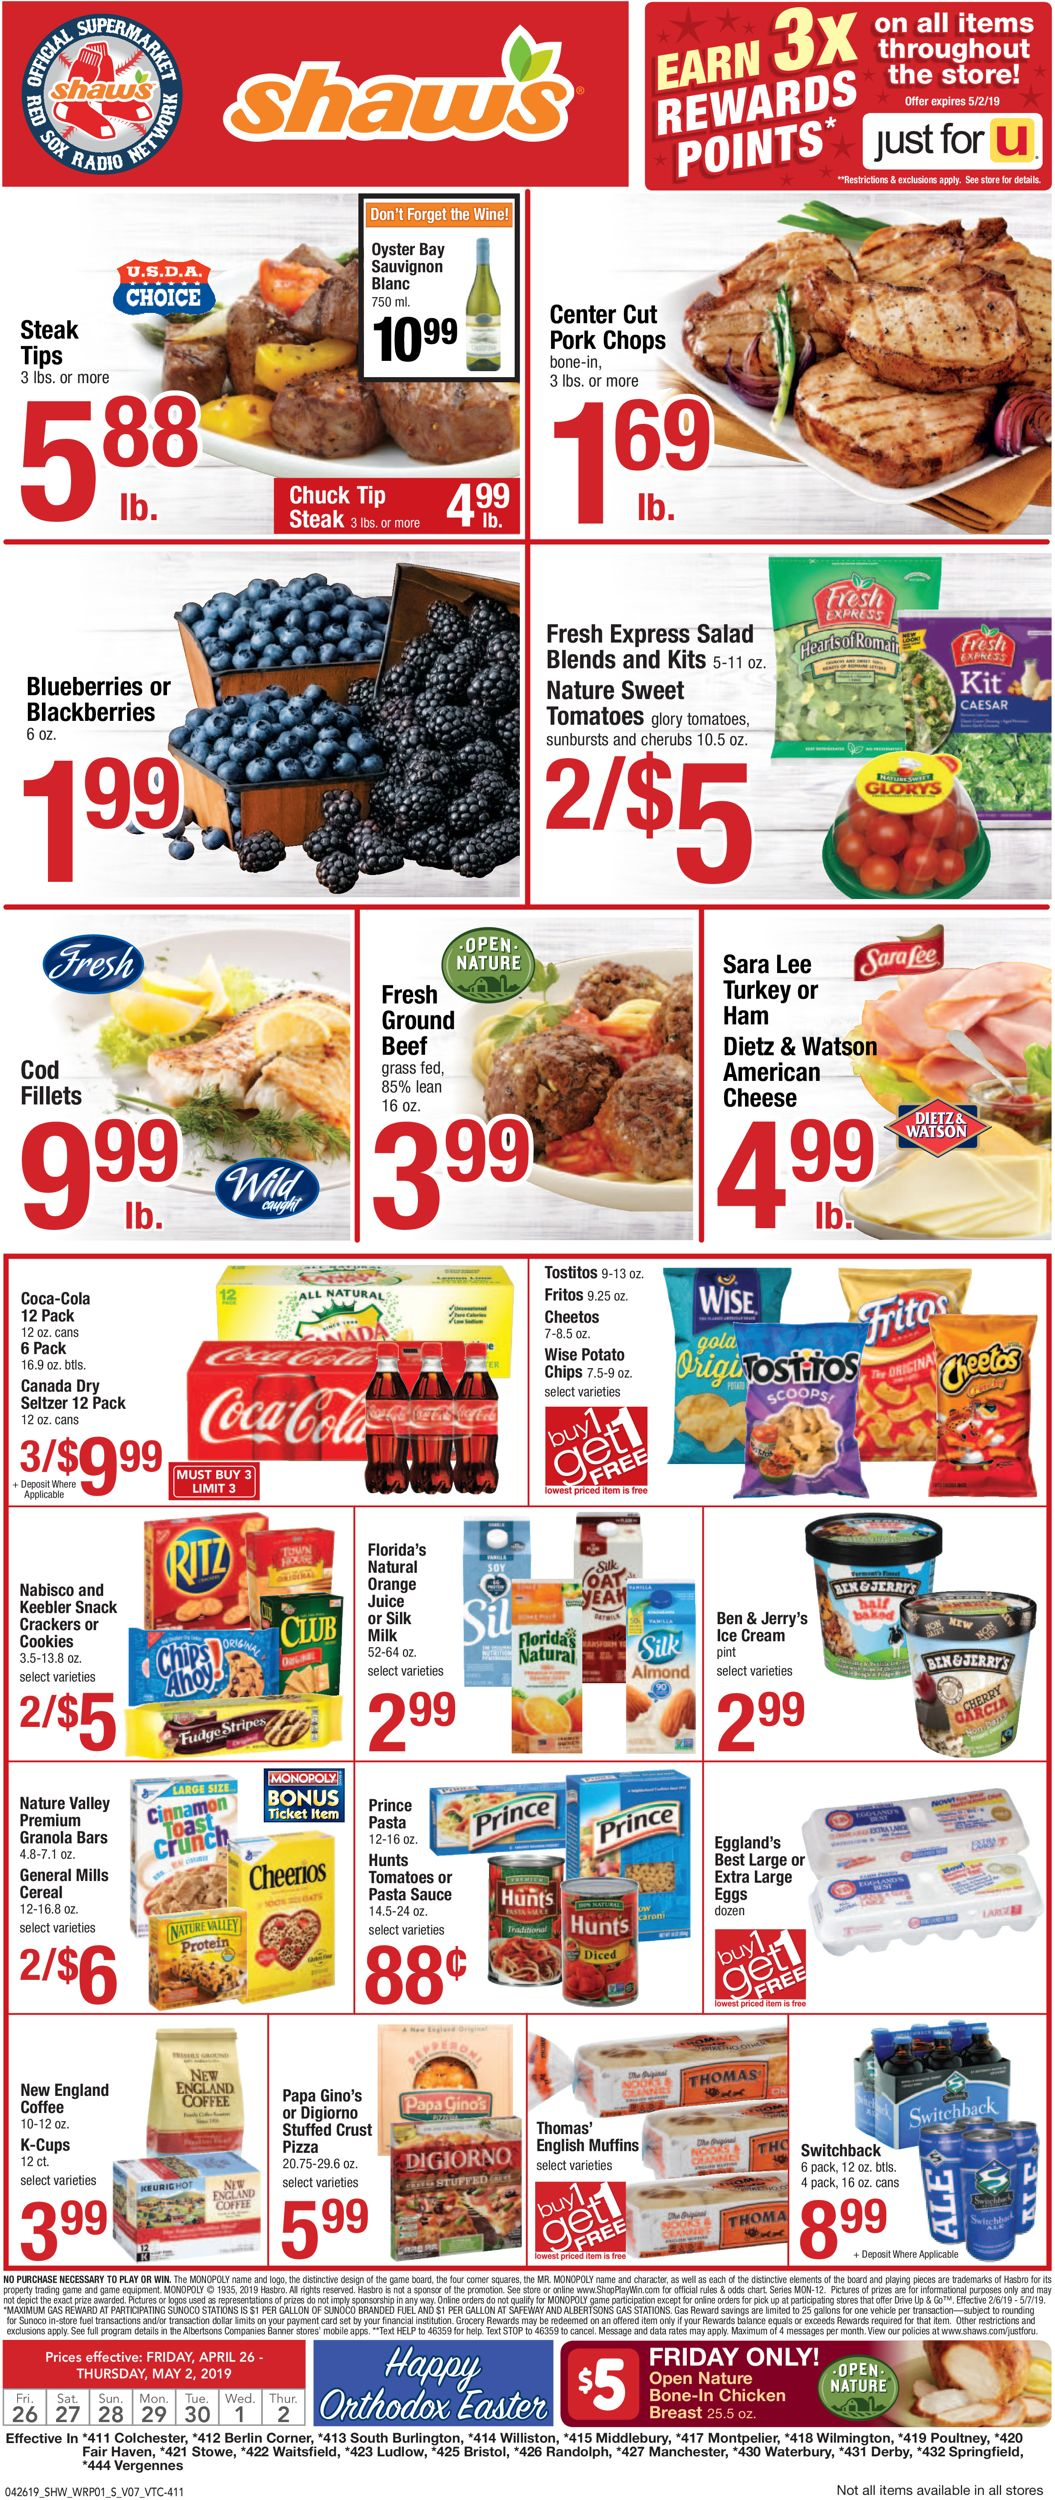 Shaw's Current weekly ad 04/26 - 05/02/2019 - frequent-ads com